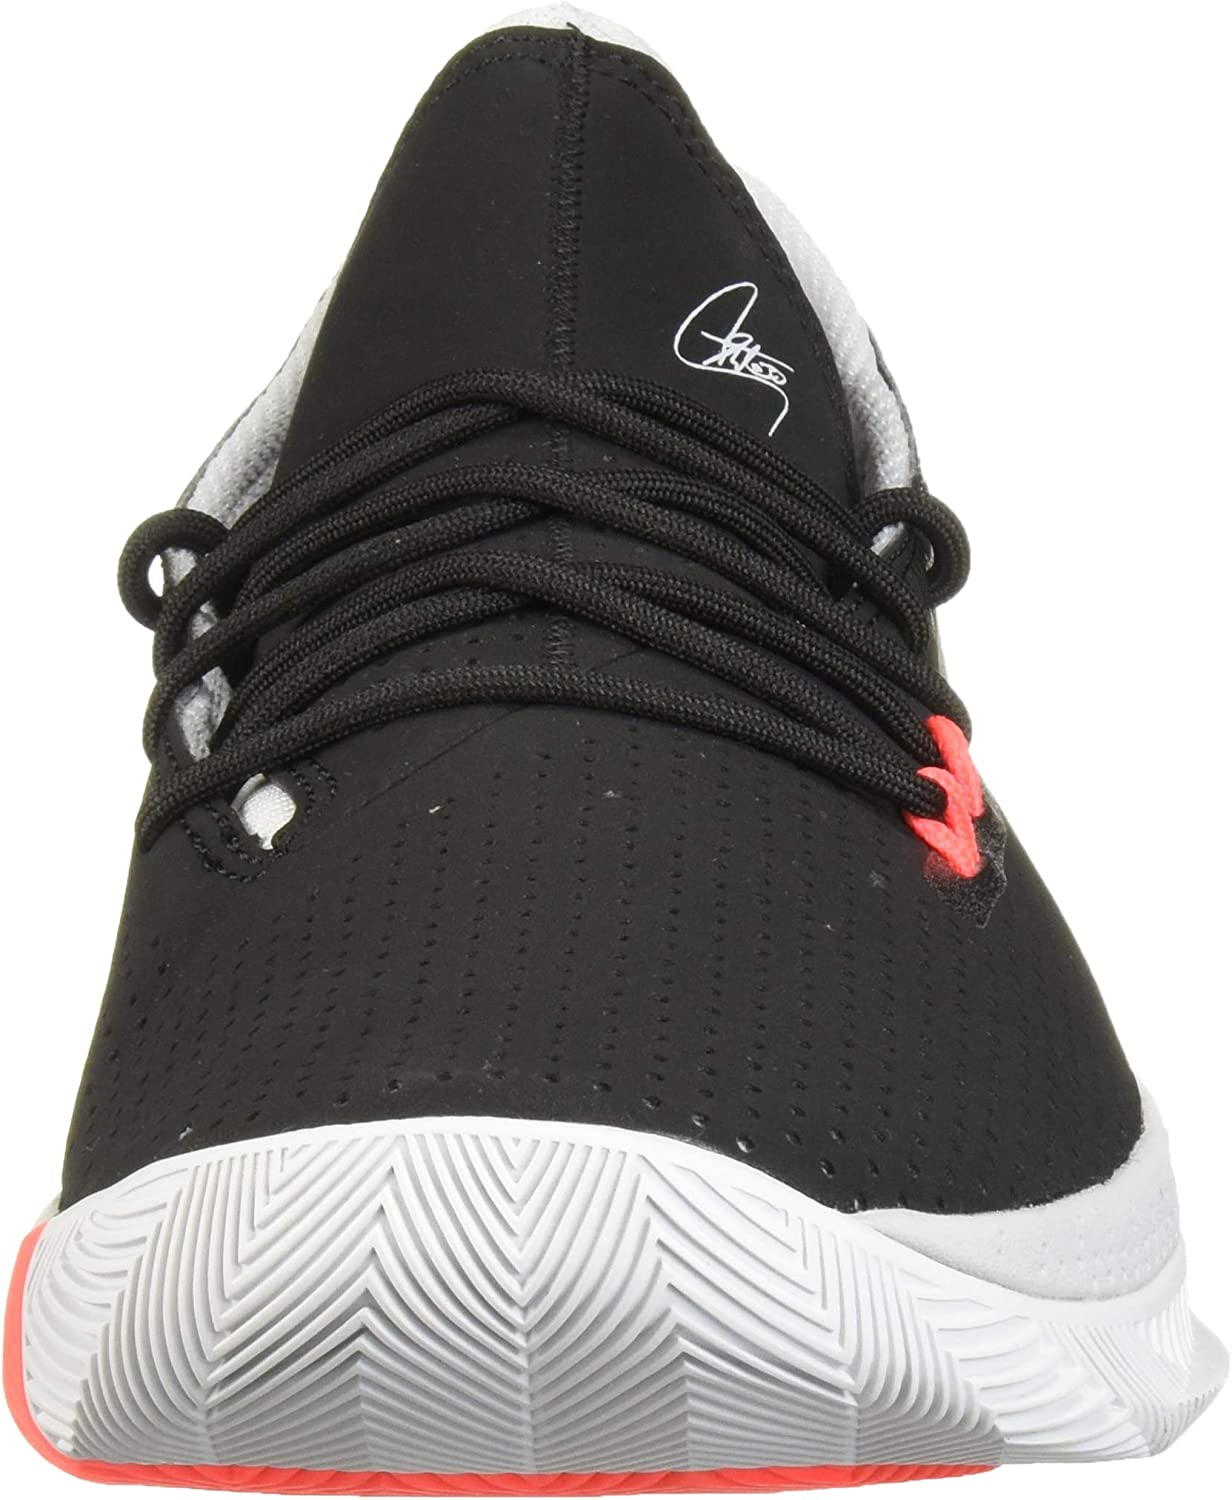 Under Armour UA SC 3zer0 III Chaussures de Basketball Homme